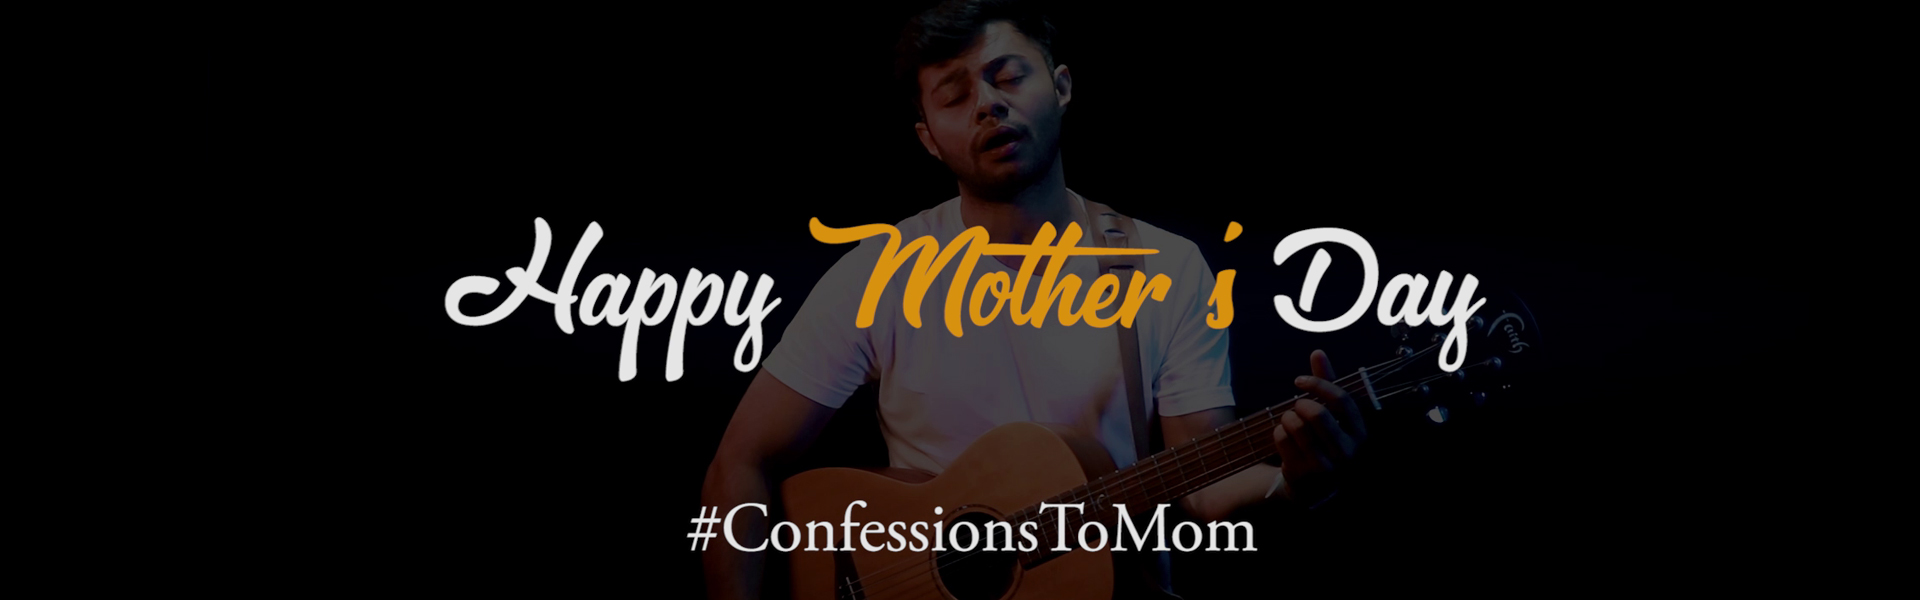 Mother's Day | Confessions to Mom | RJ Kisna